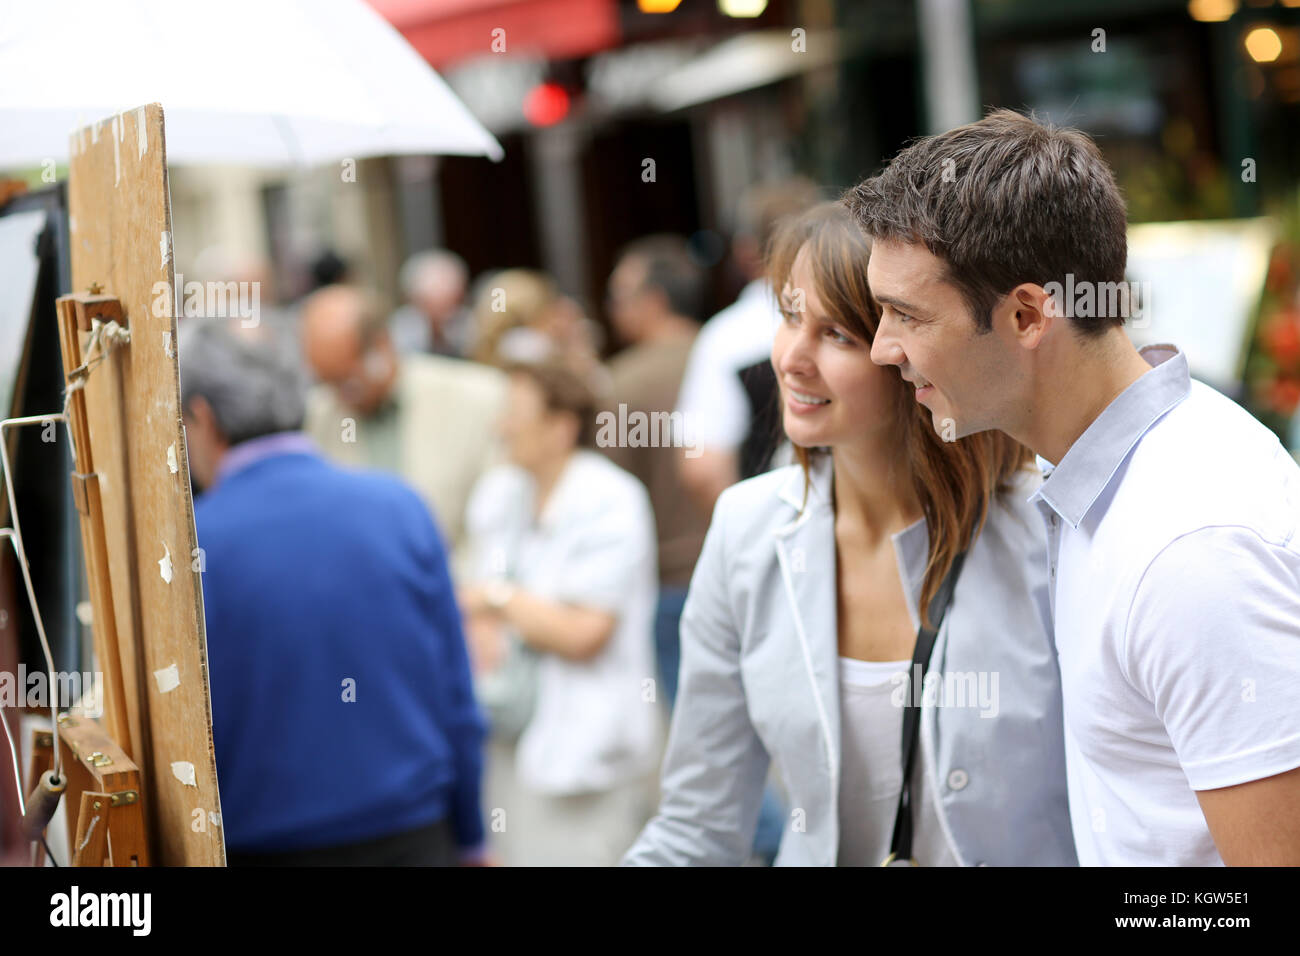 Couple in Paris looking at paintings in the street - Stock Image